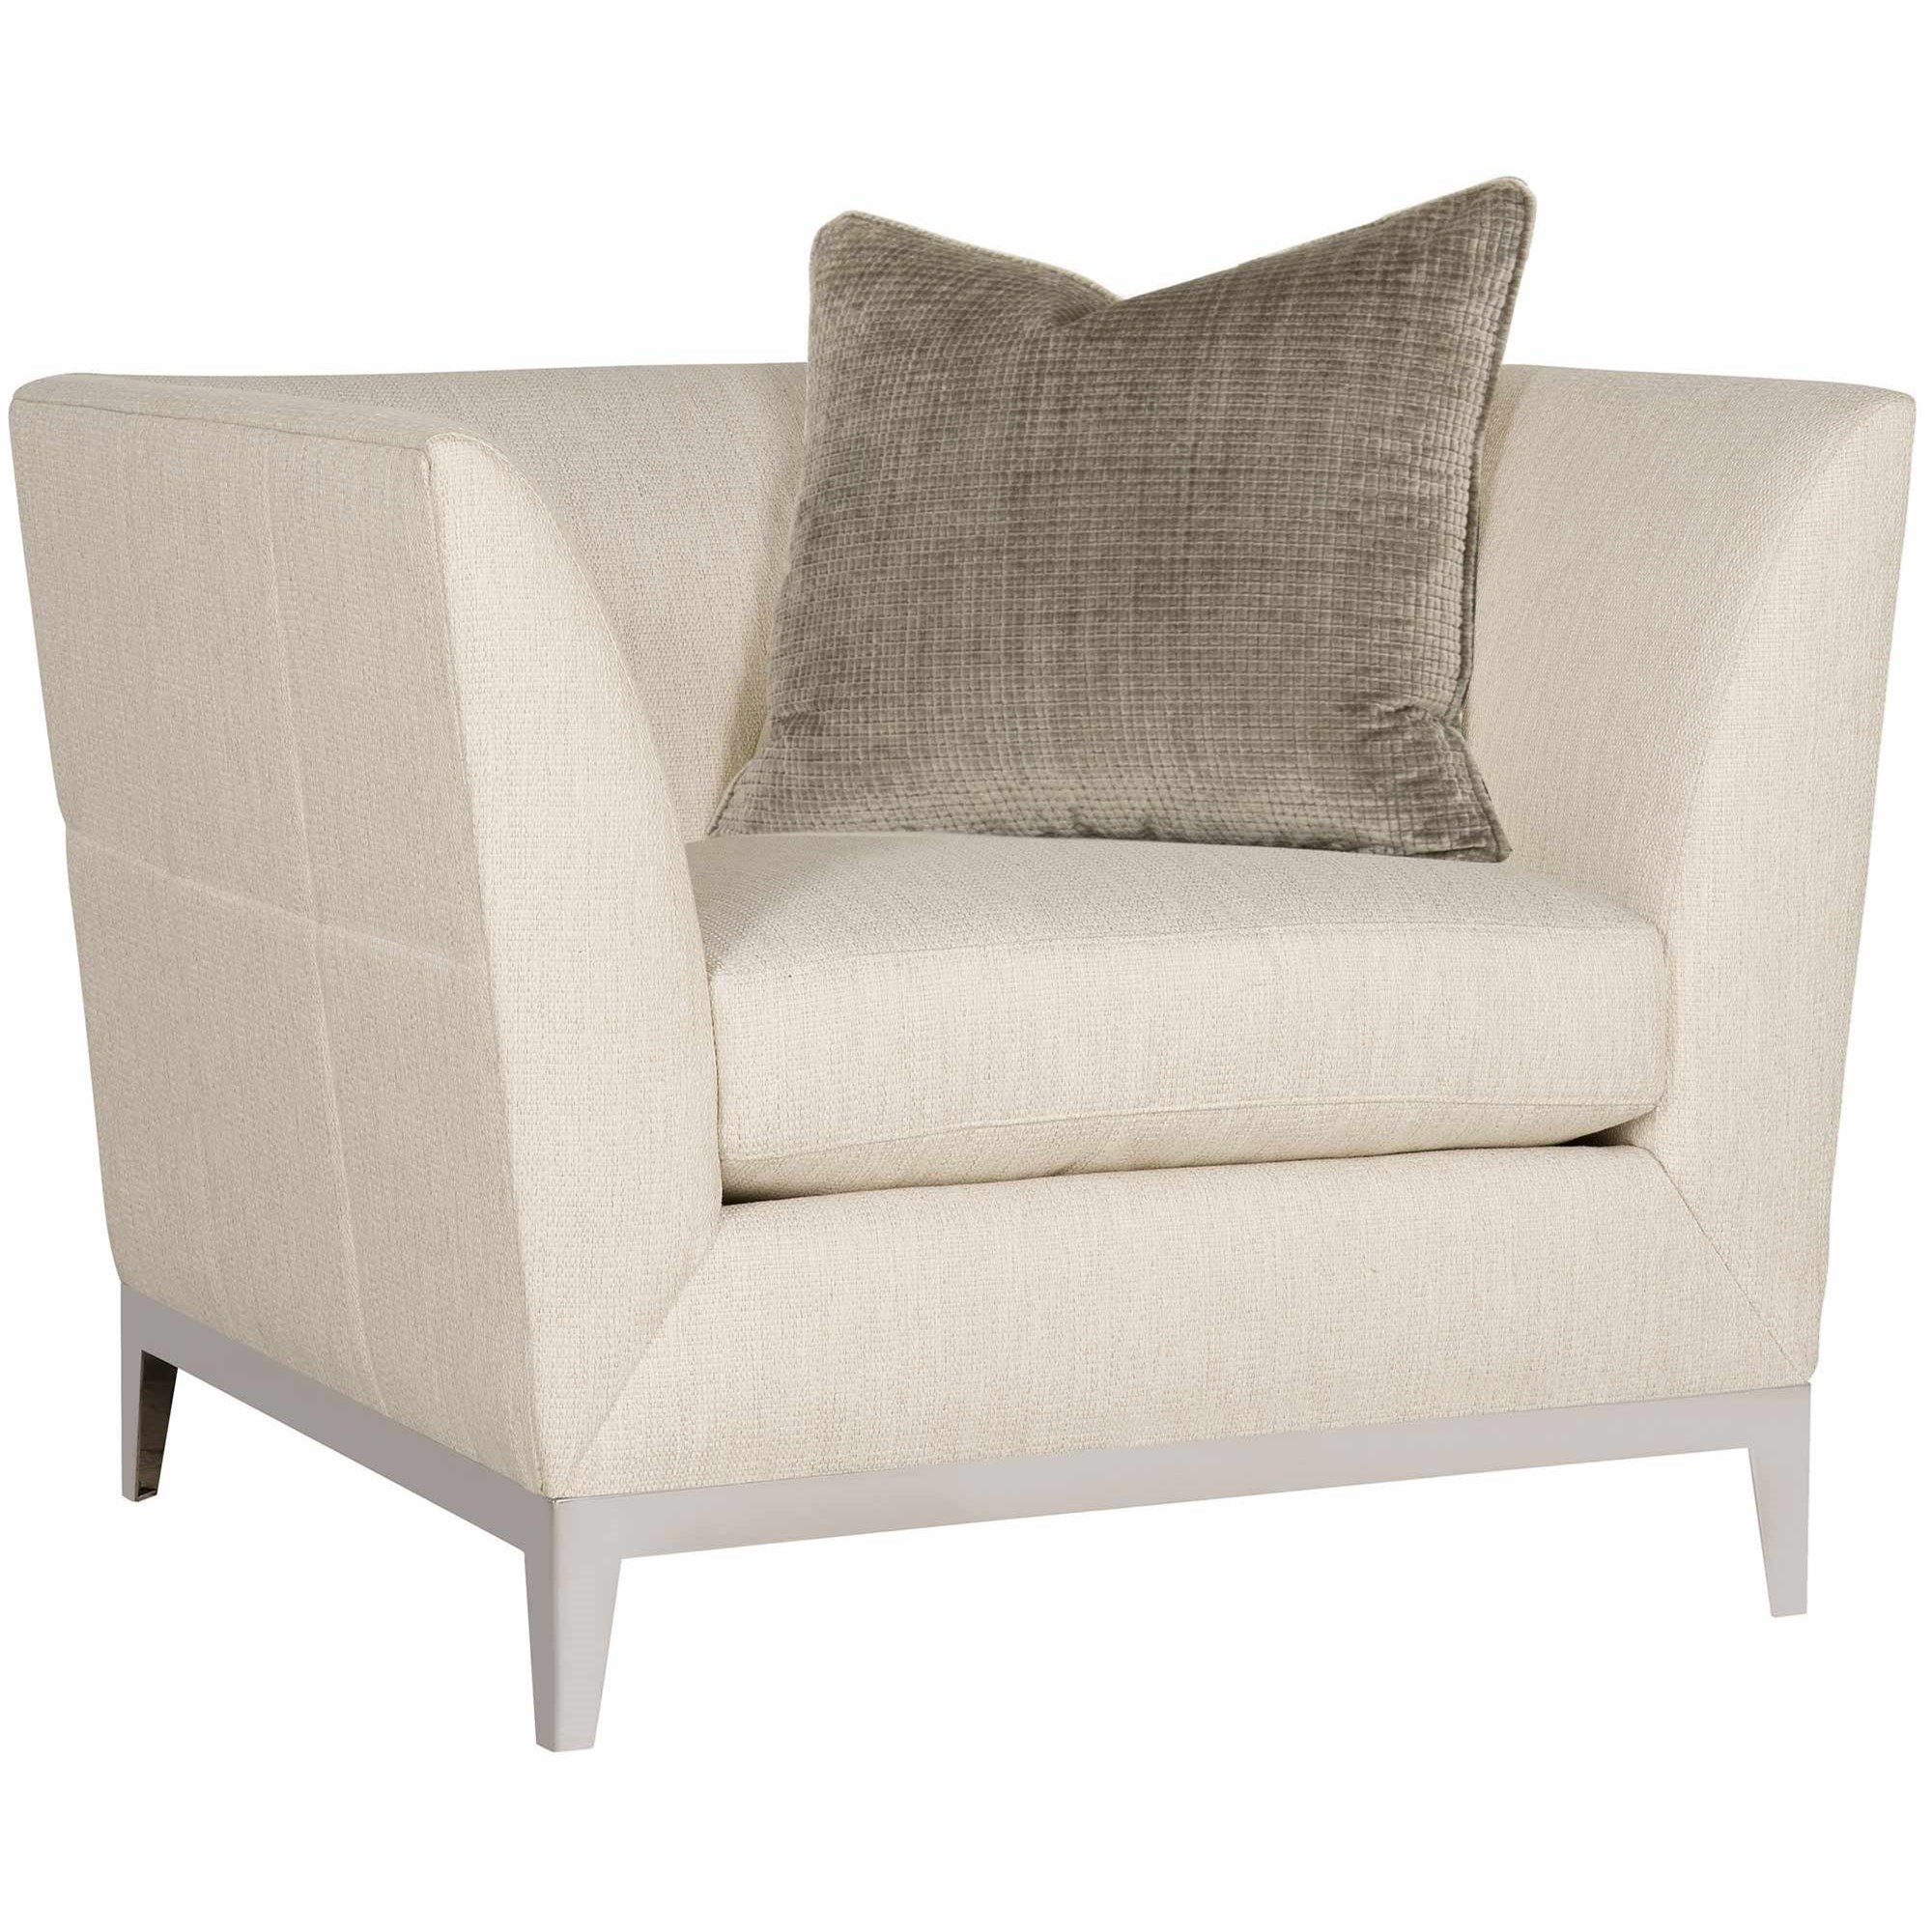 Bernhardt Beck Contemporary Tuxedo Back Chair With Stainless Steel Trim